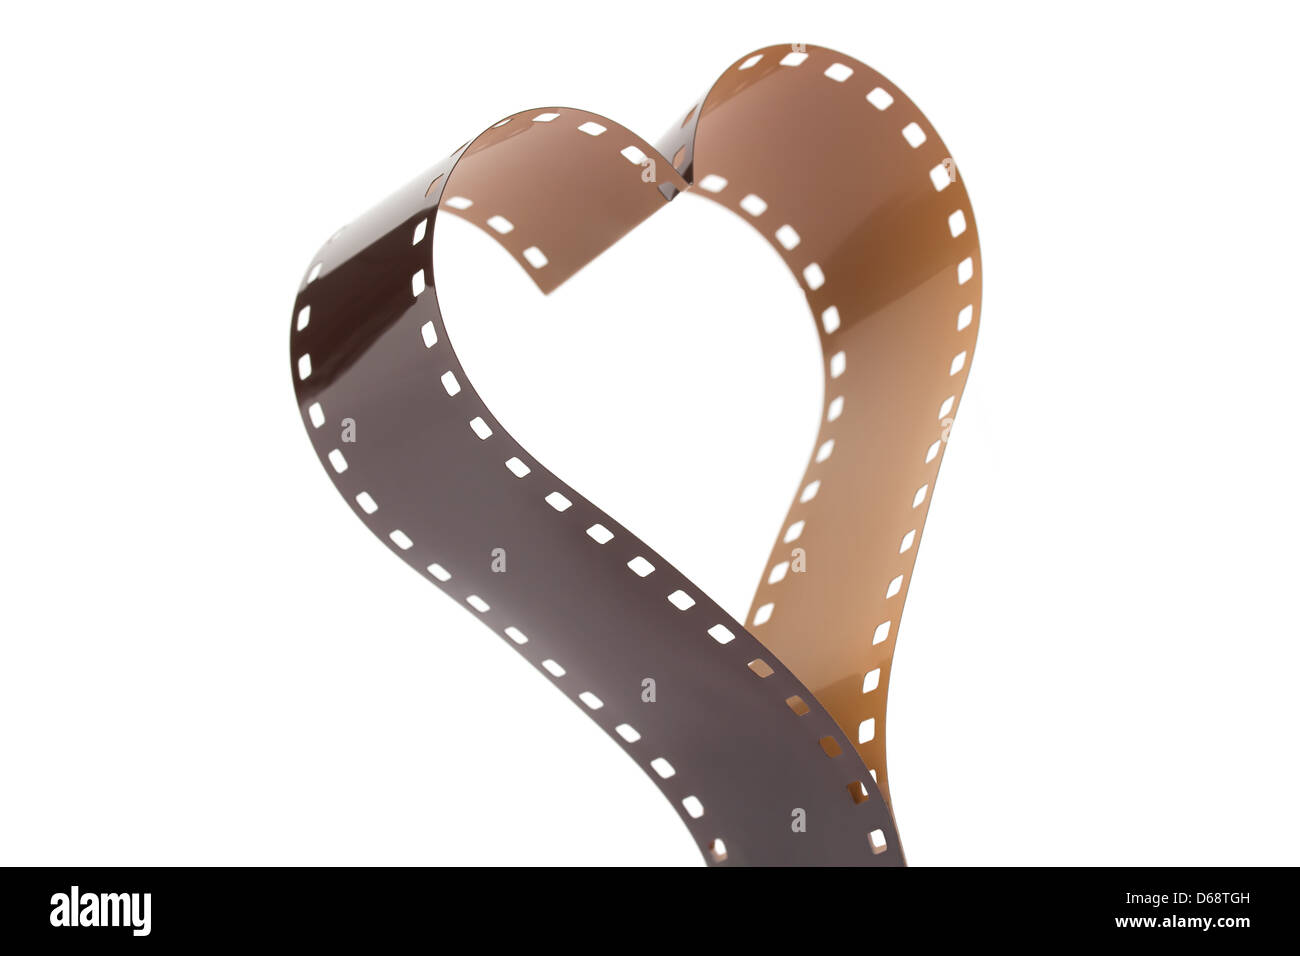 Heart shape made from a 35mm camera film strip on white - Stock Image